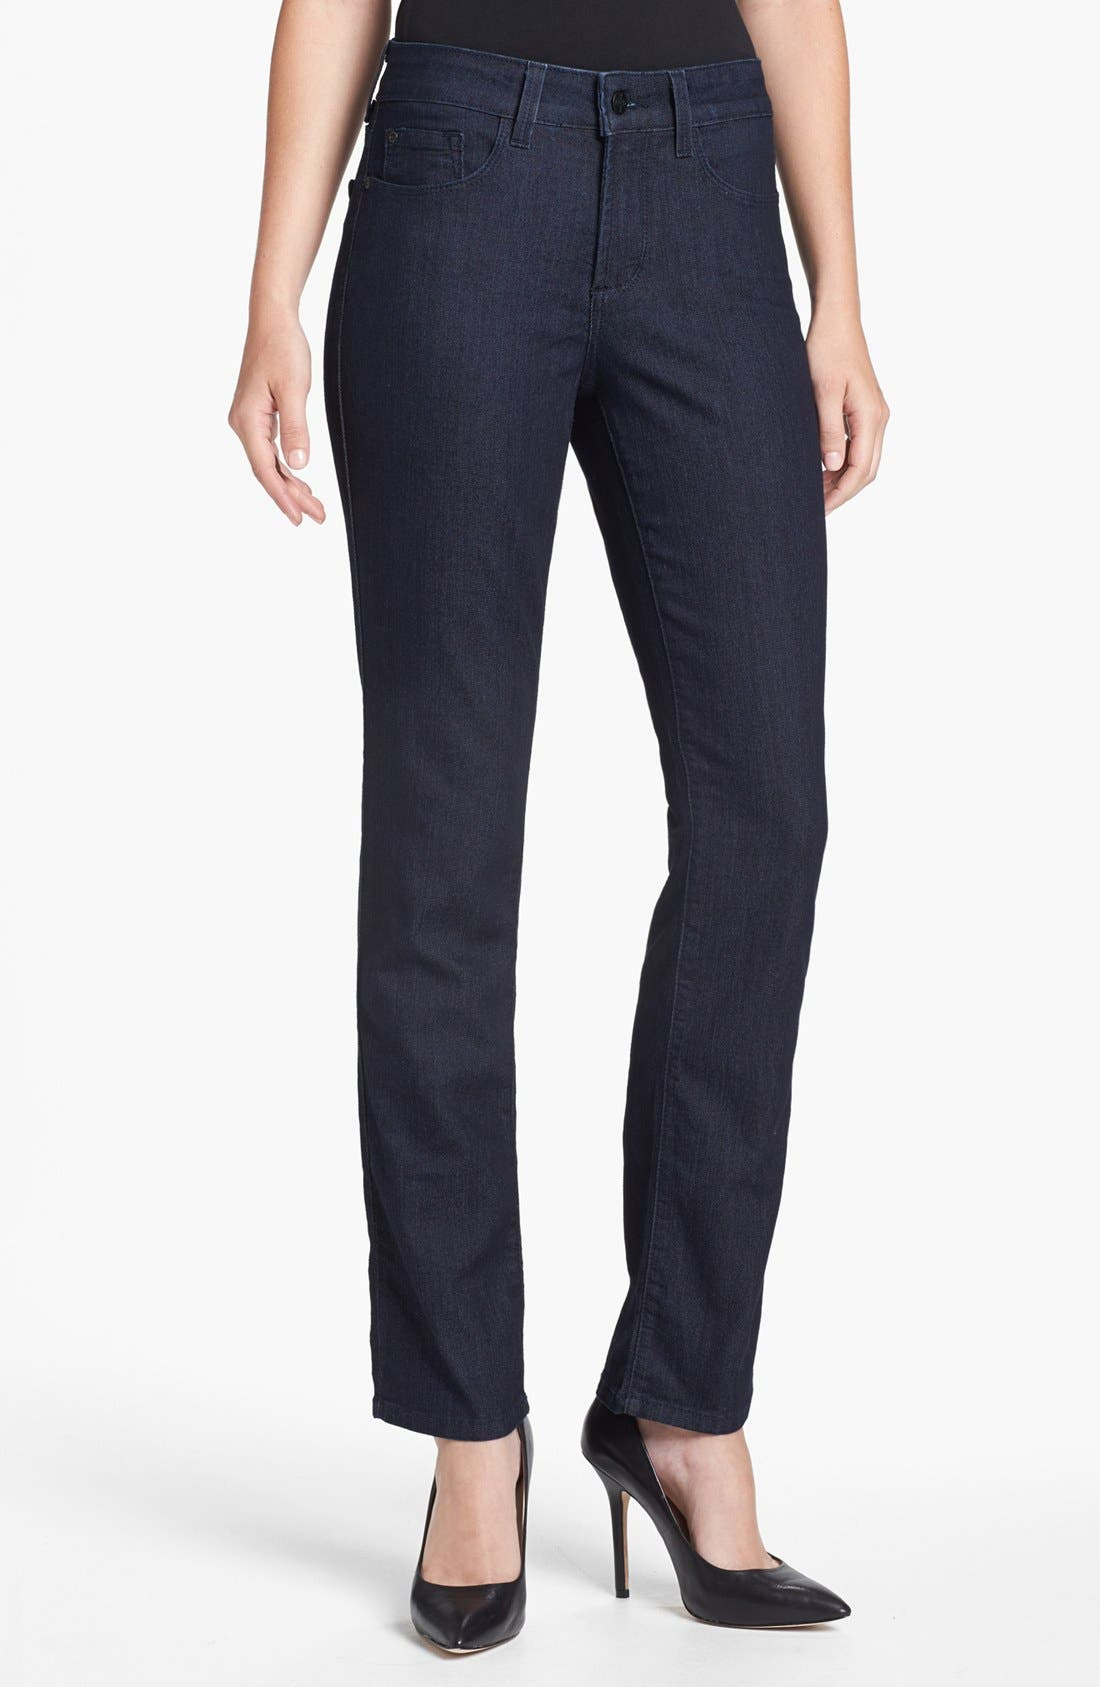 Alternate Image 1 Selected - NYDJ 'Sheri' Stretch Skinny Jeans (Dark Enzyme)